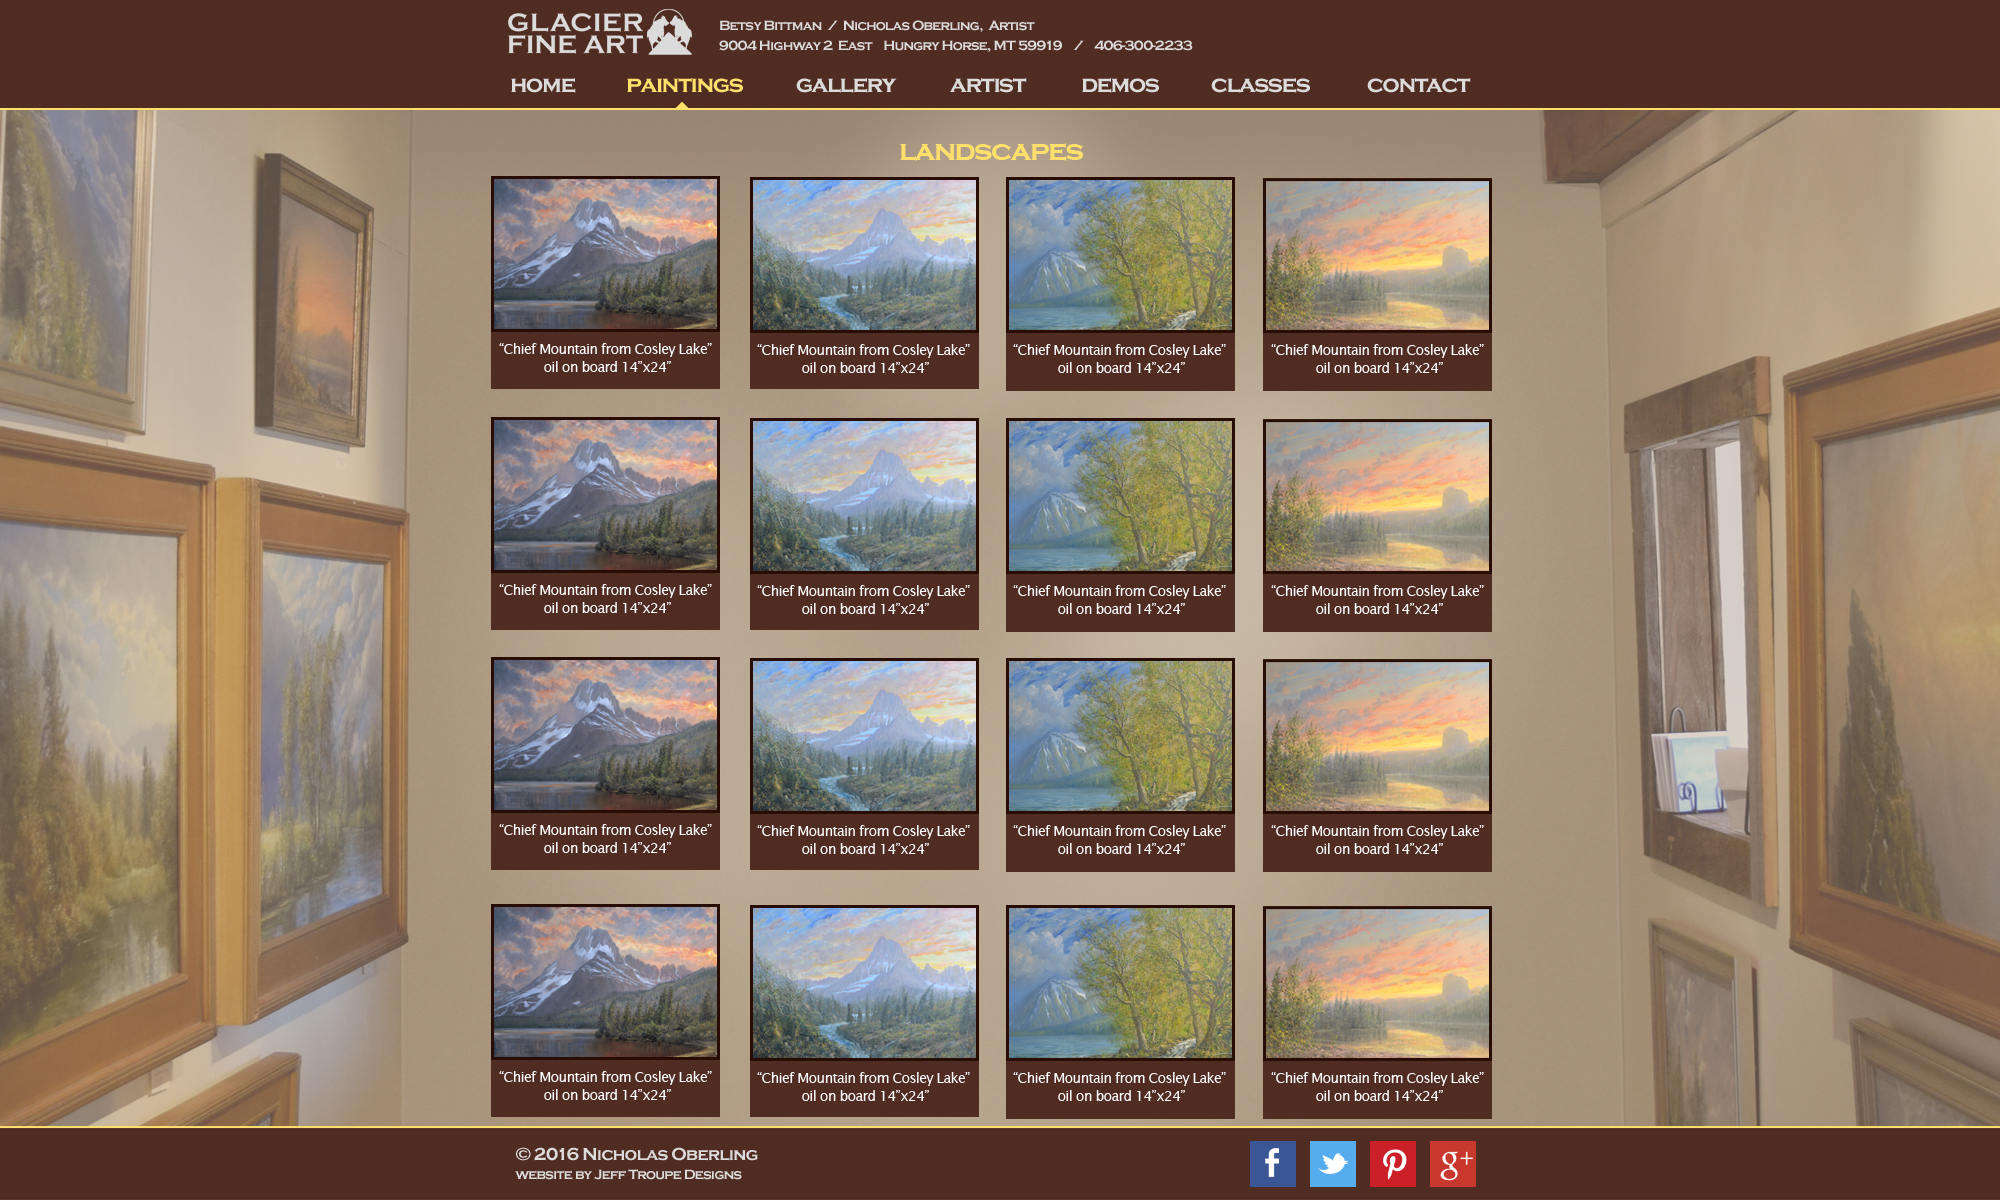 website design image paintings of mountains and trees inside art gallery